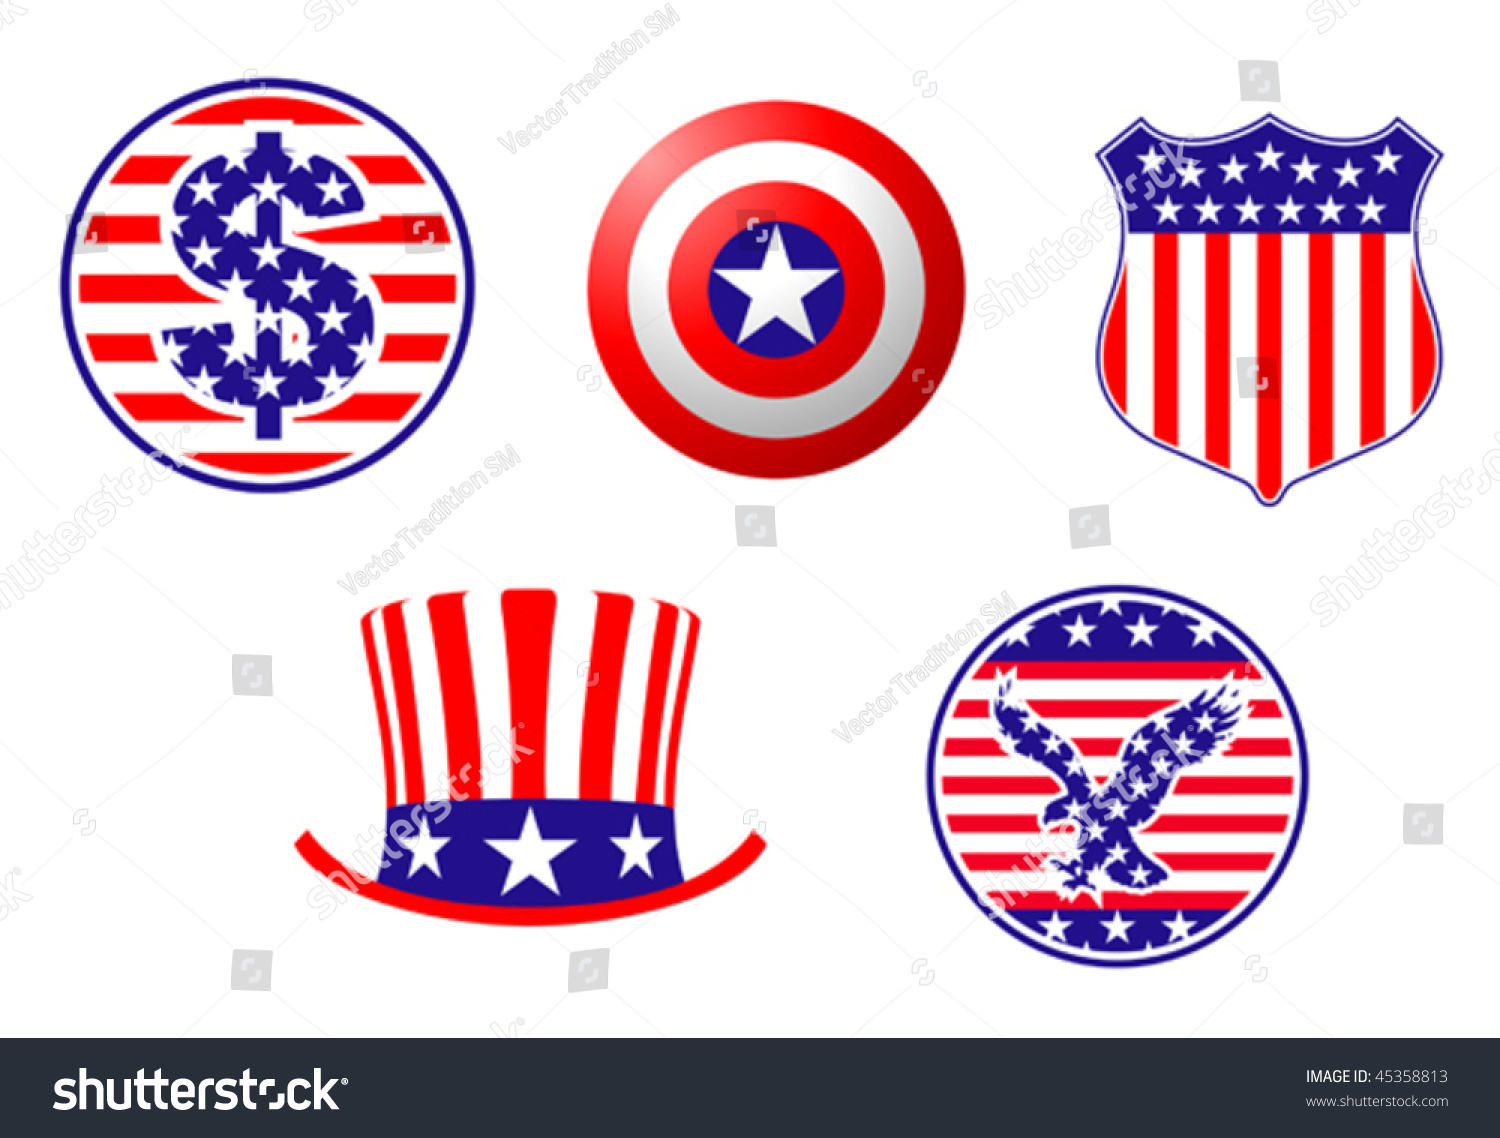 Watch more like American Symbols Clip Art